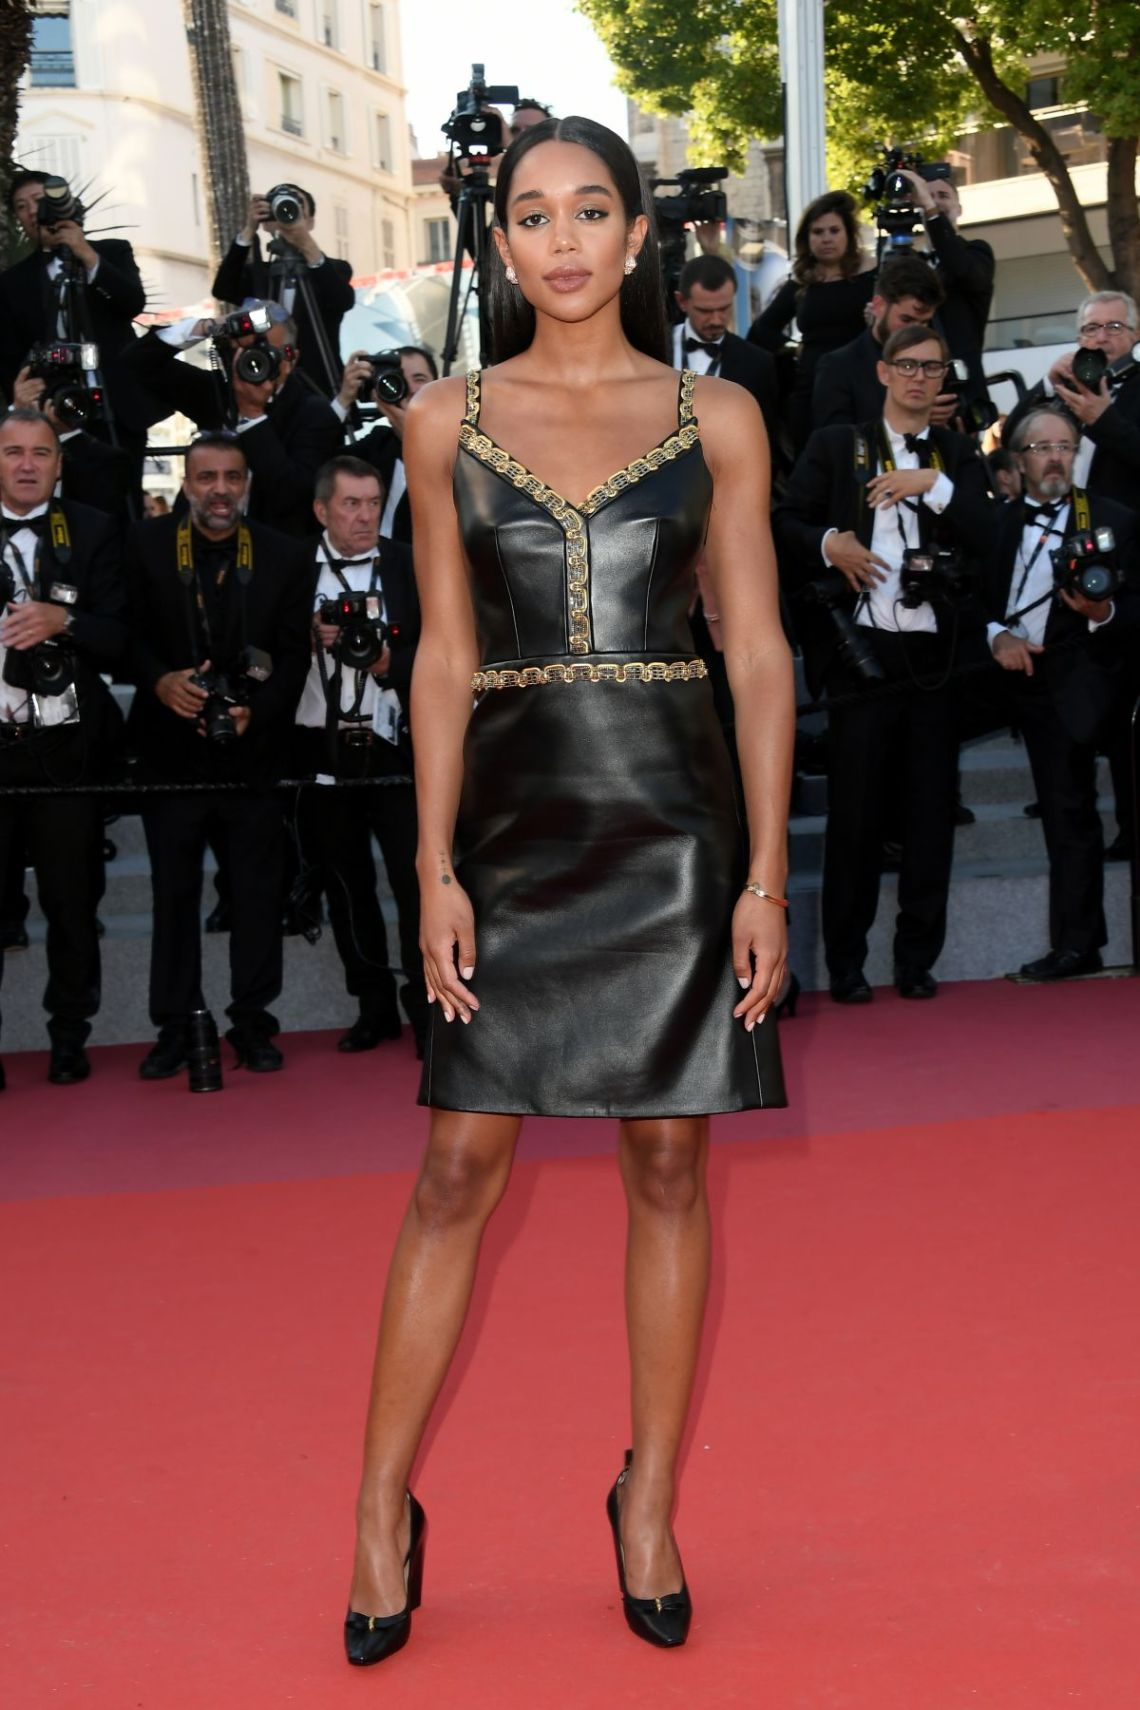 laura-harrier-at-71st-annual-cannes-film-festival-closing-ceremony-05-19-2018-4LV